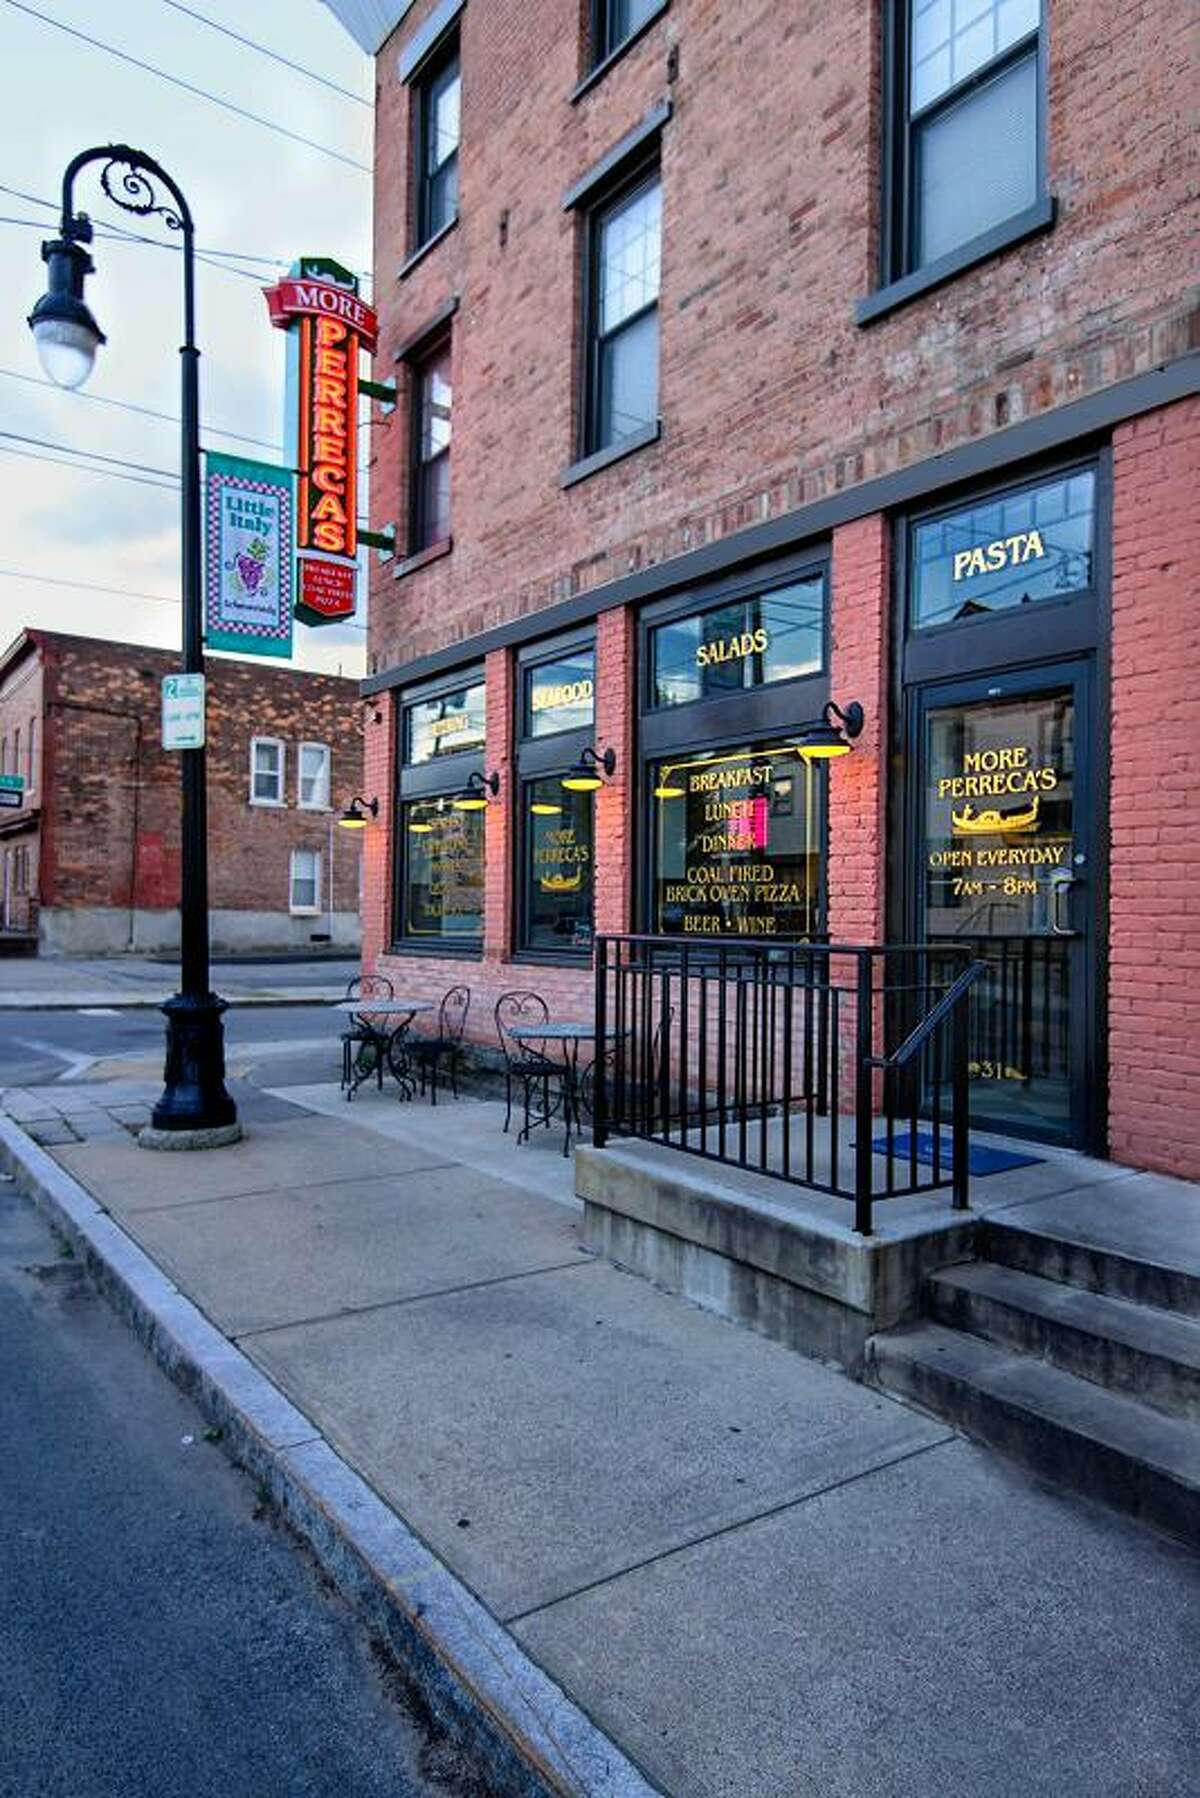 More Perreca's in Schenectady's Little Italy plans to reopen April 1, 2021.